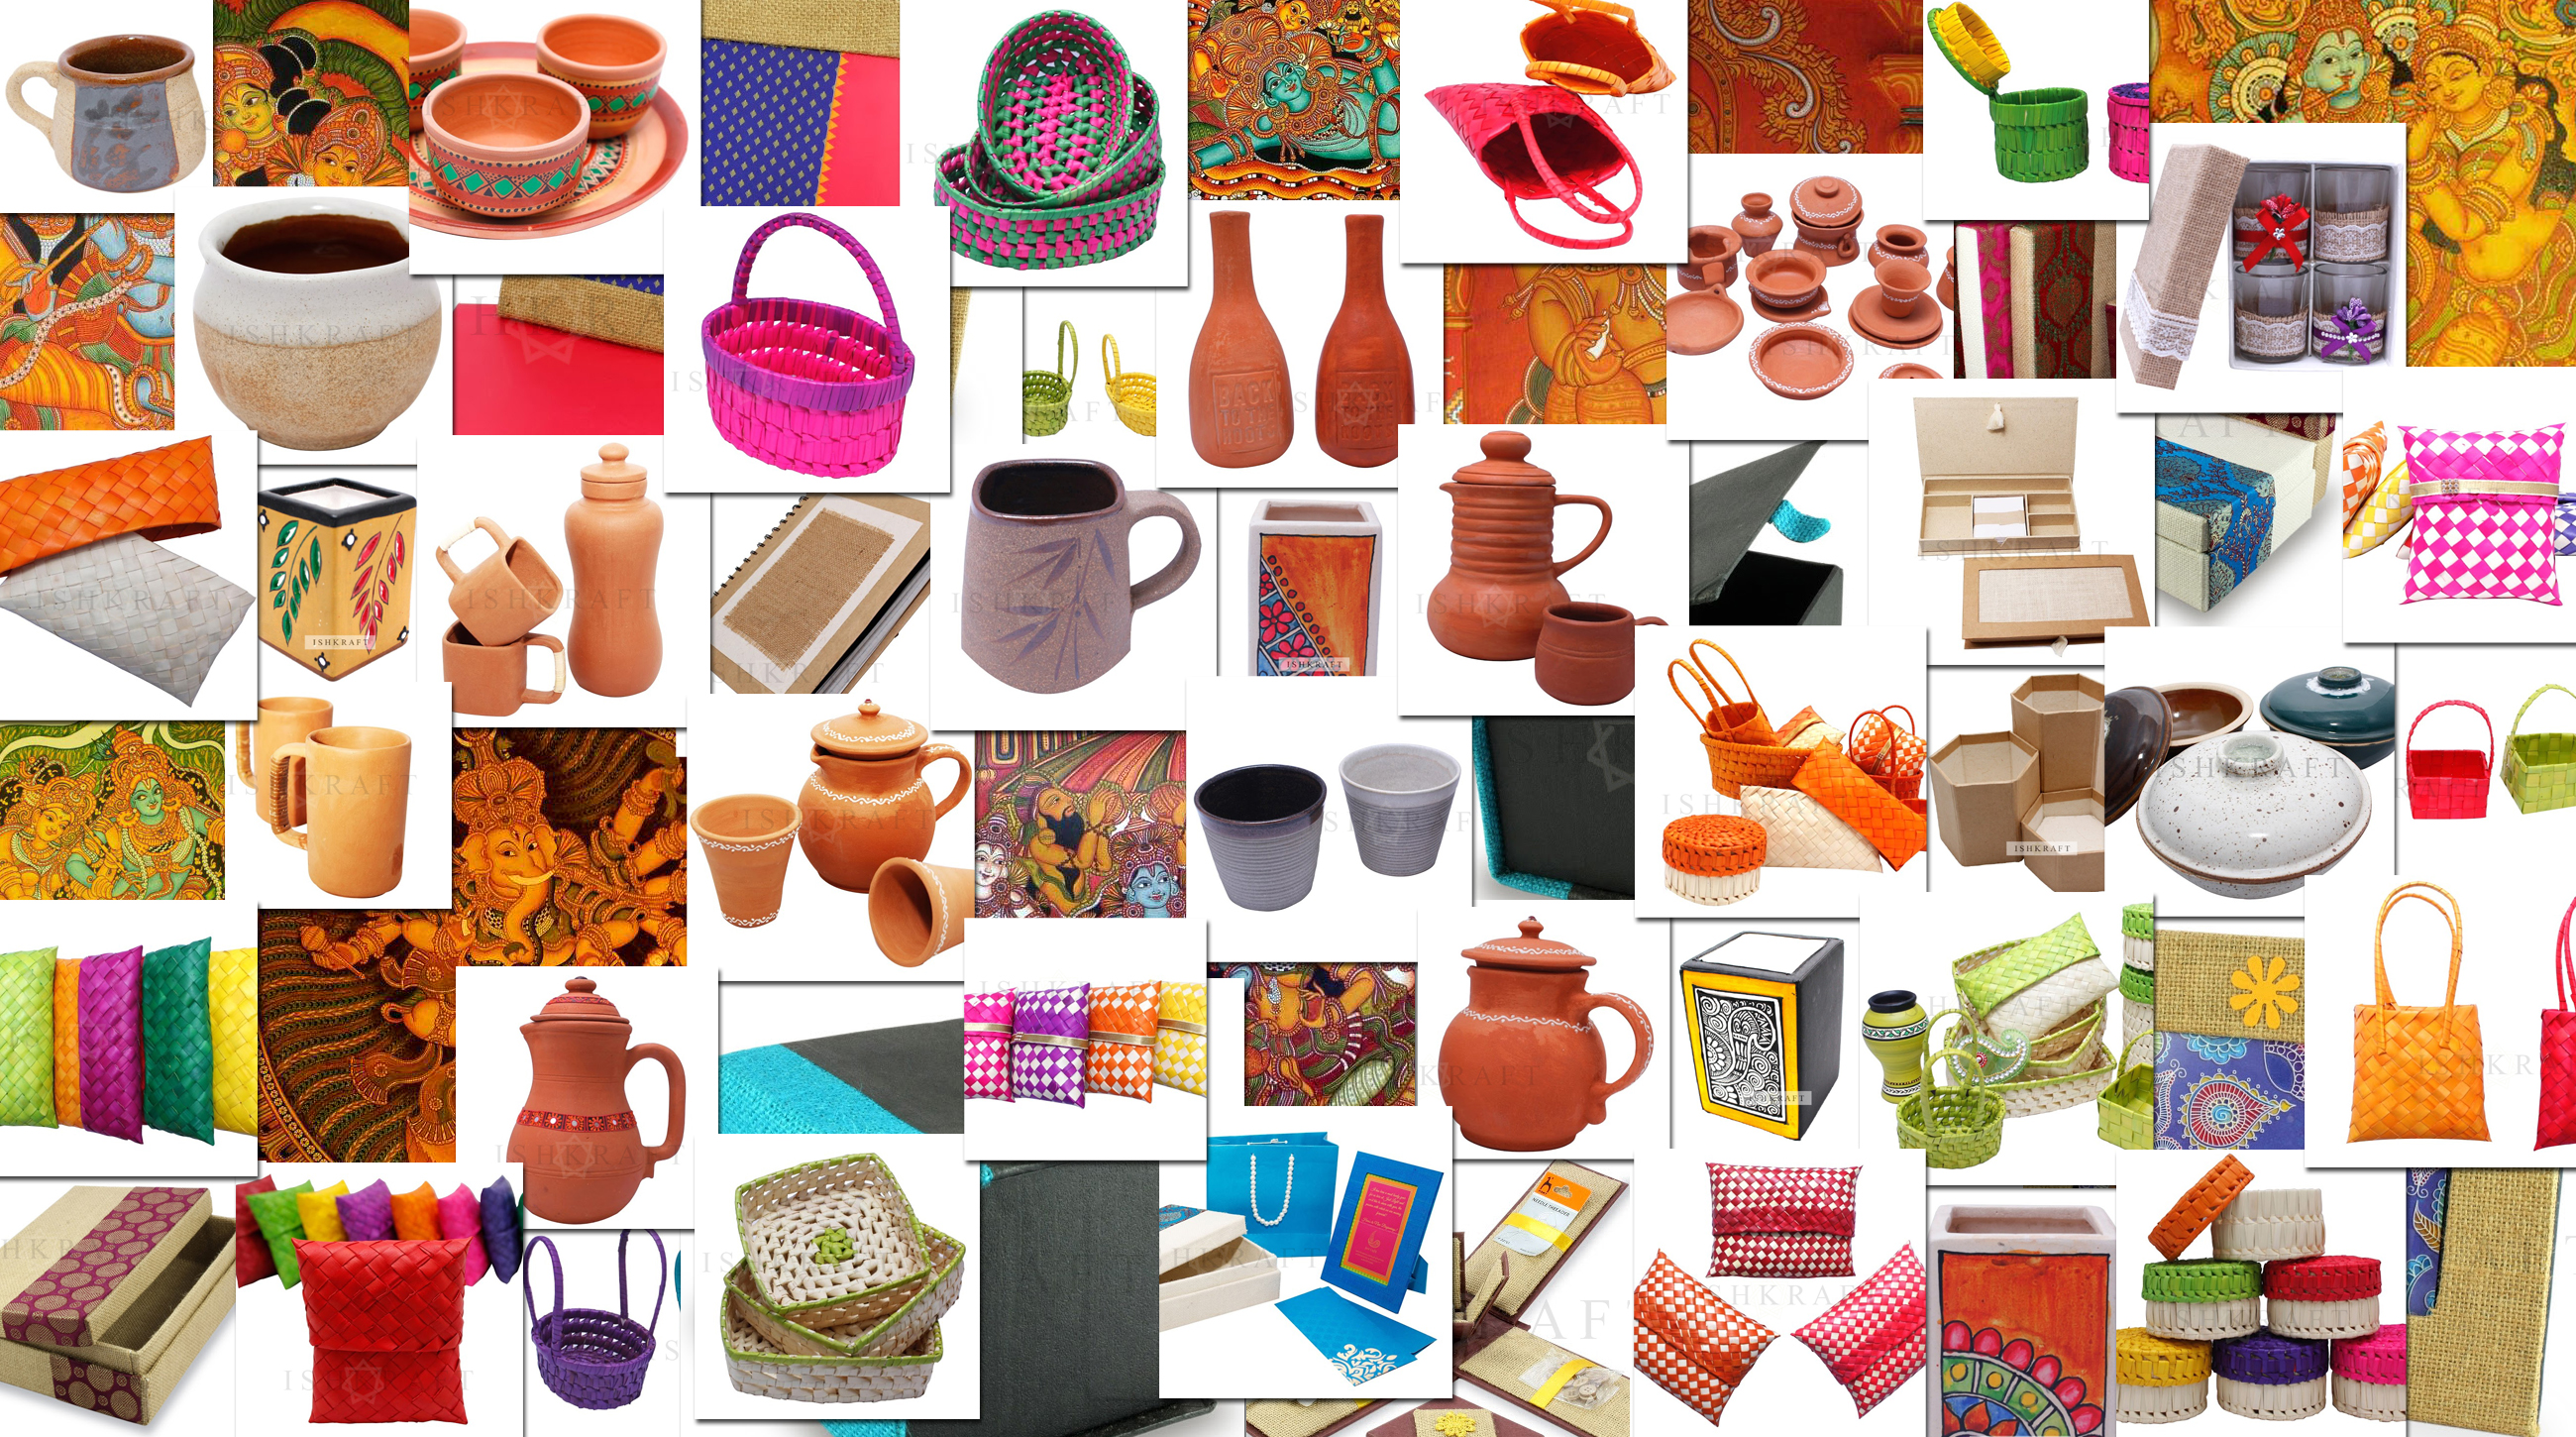 Celebrating Unparalleled Diversity - Your search for authentic handicrafts ends here...